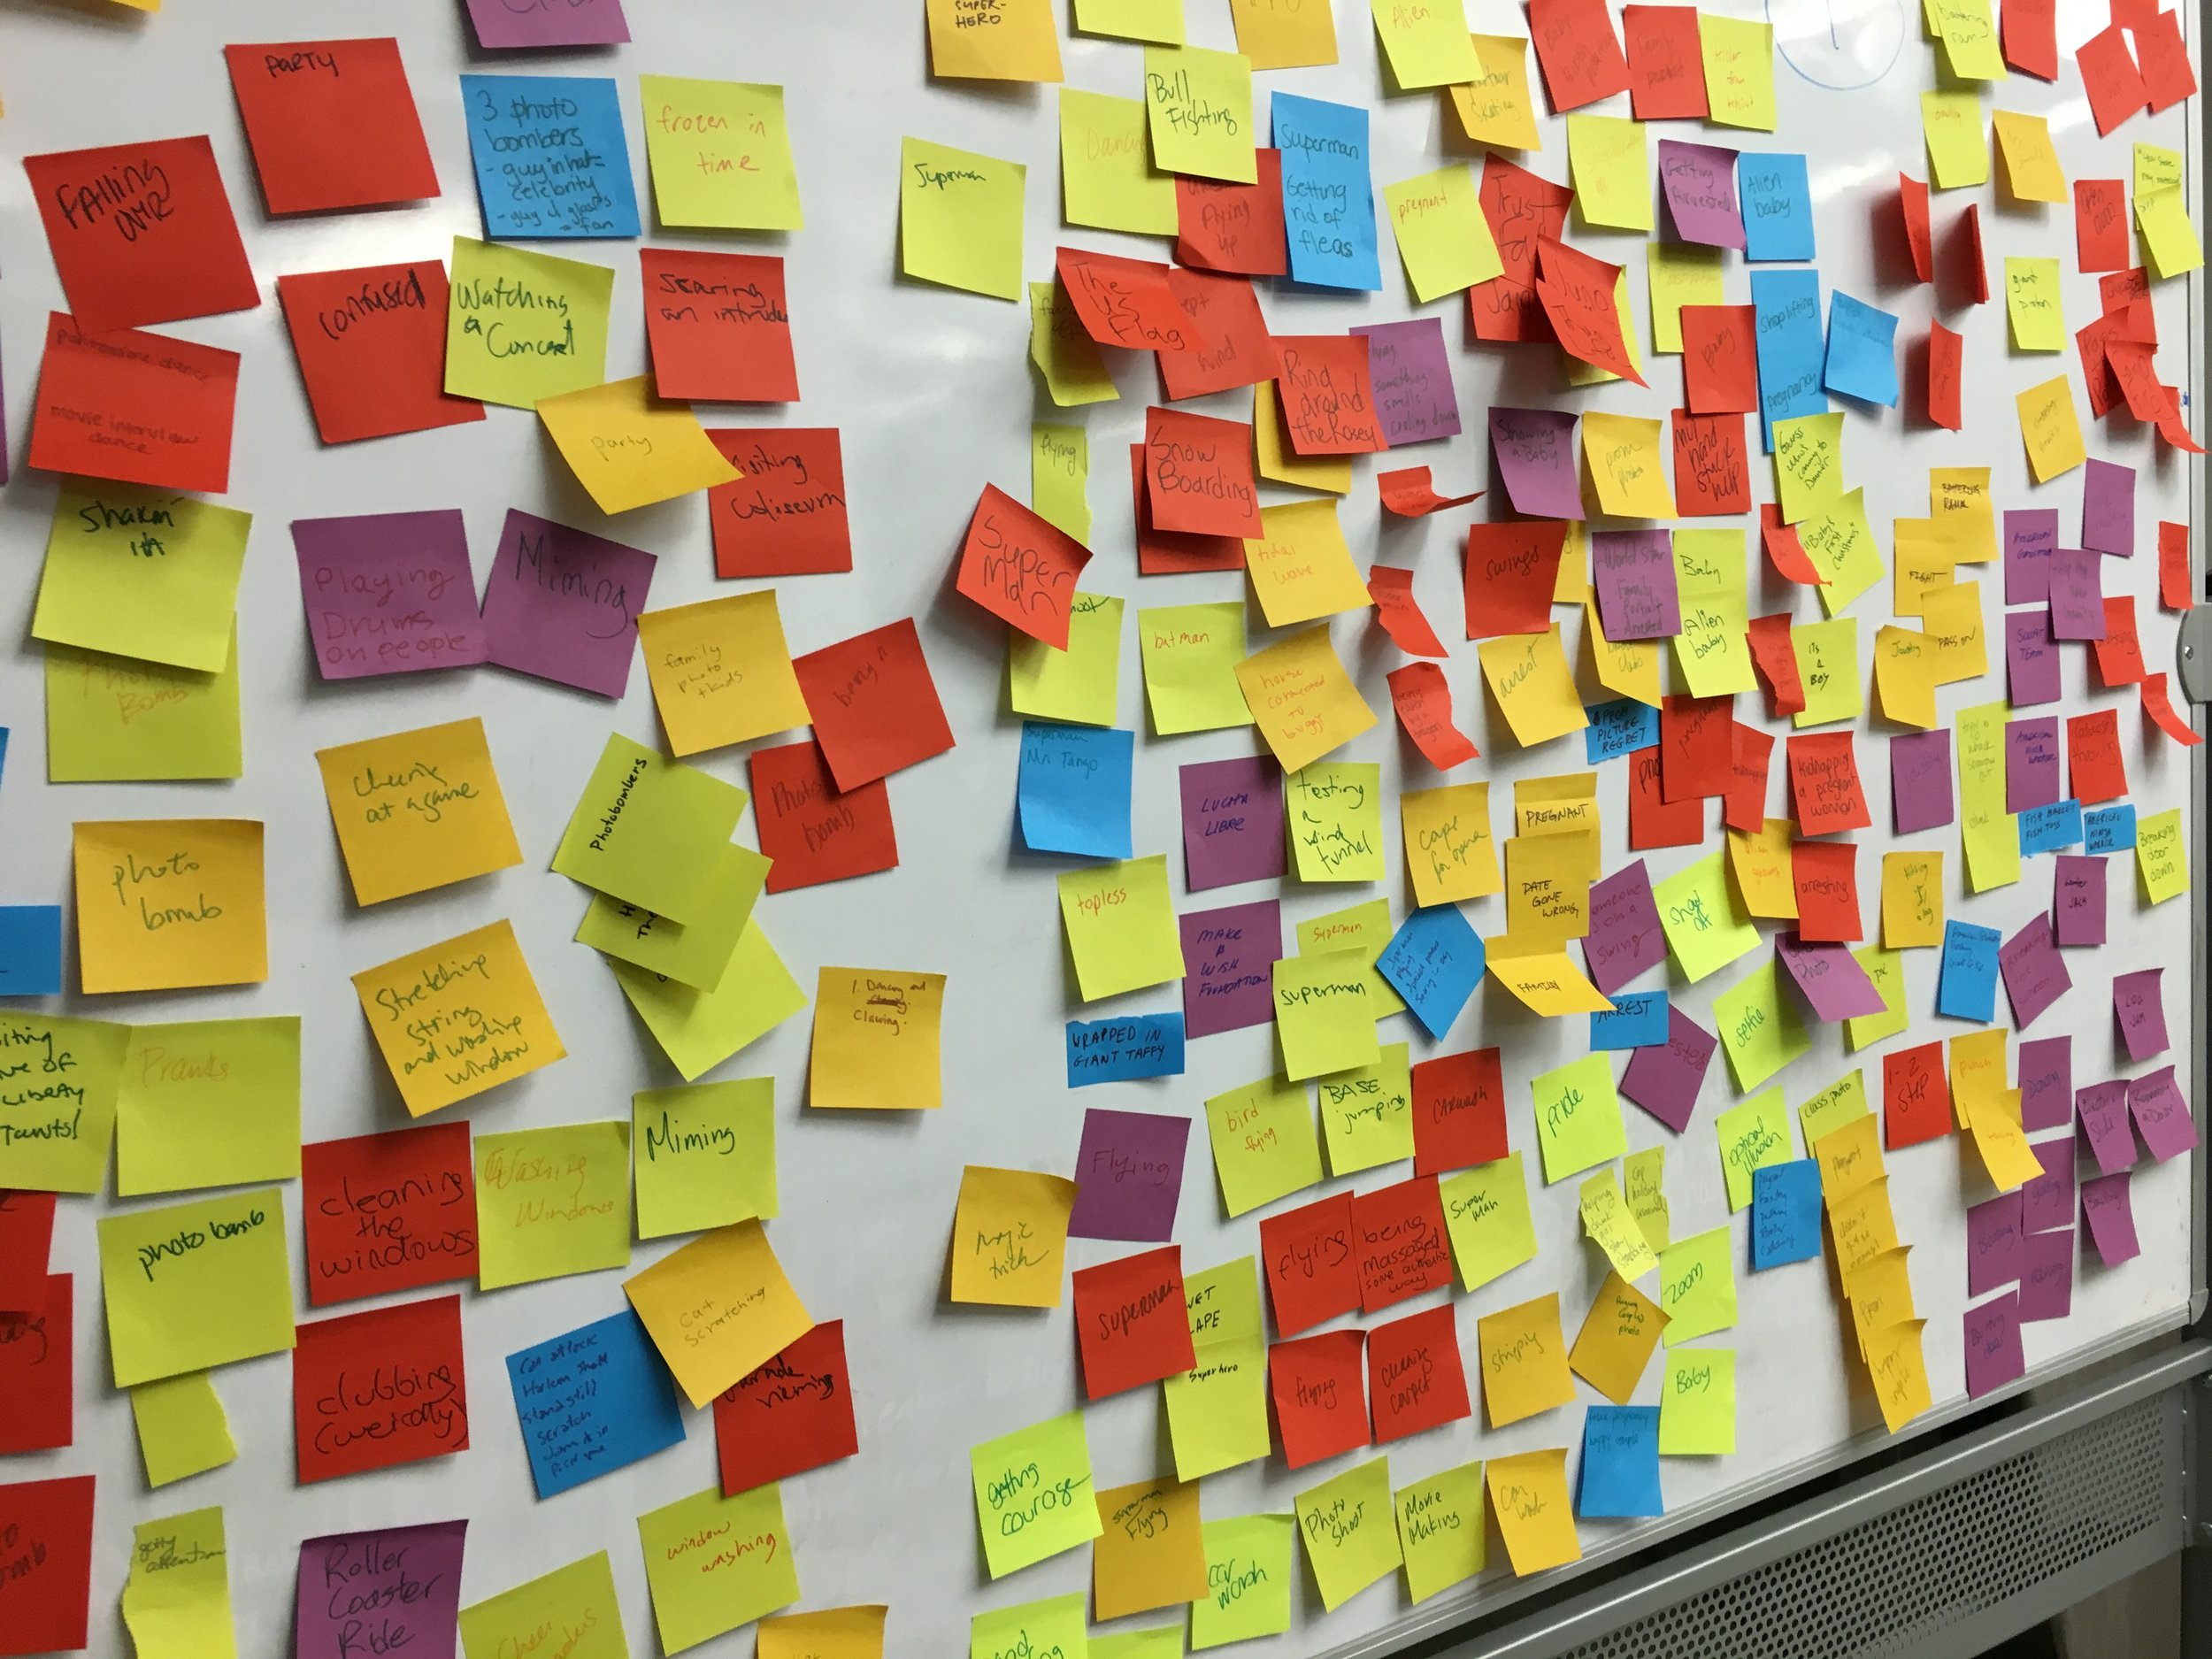 post-it wall - Dan castro.jpg